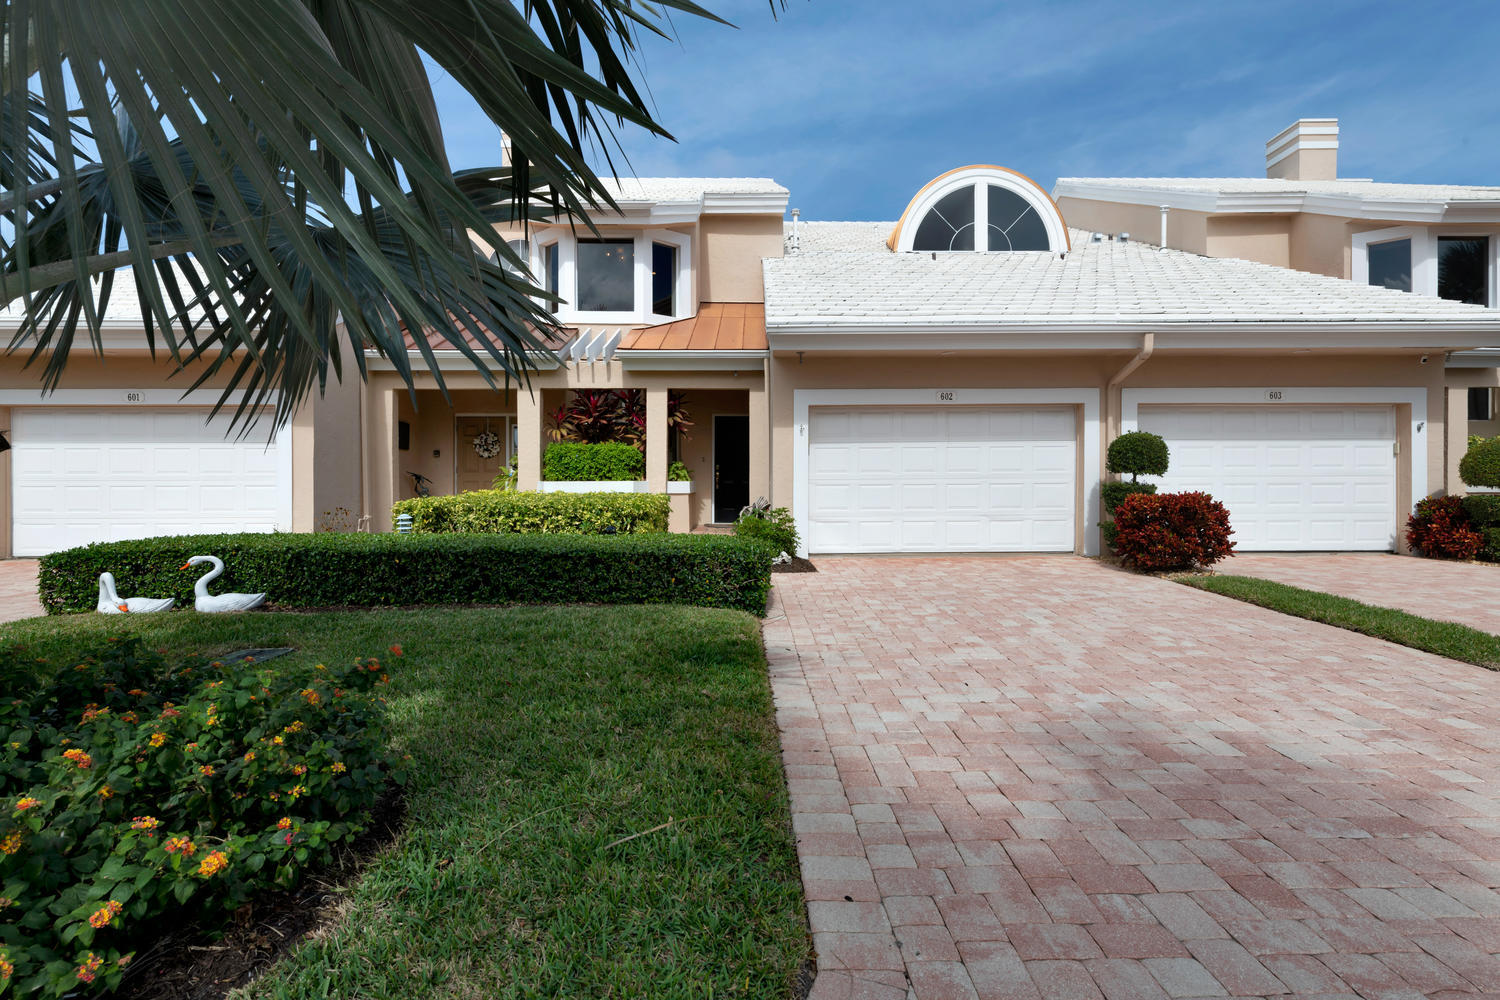 New Home for sale at 602 Captains Way in Jupiter